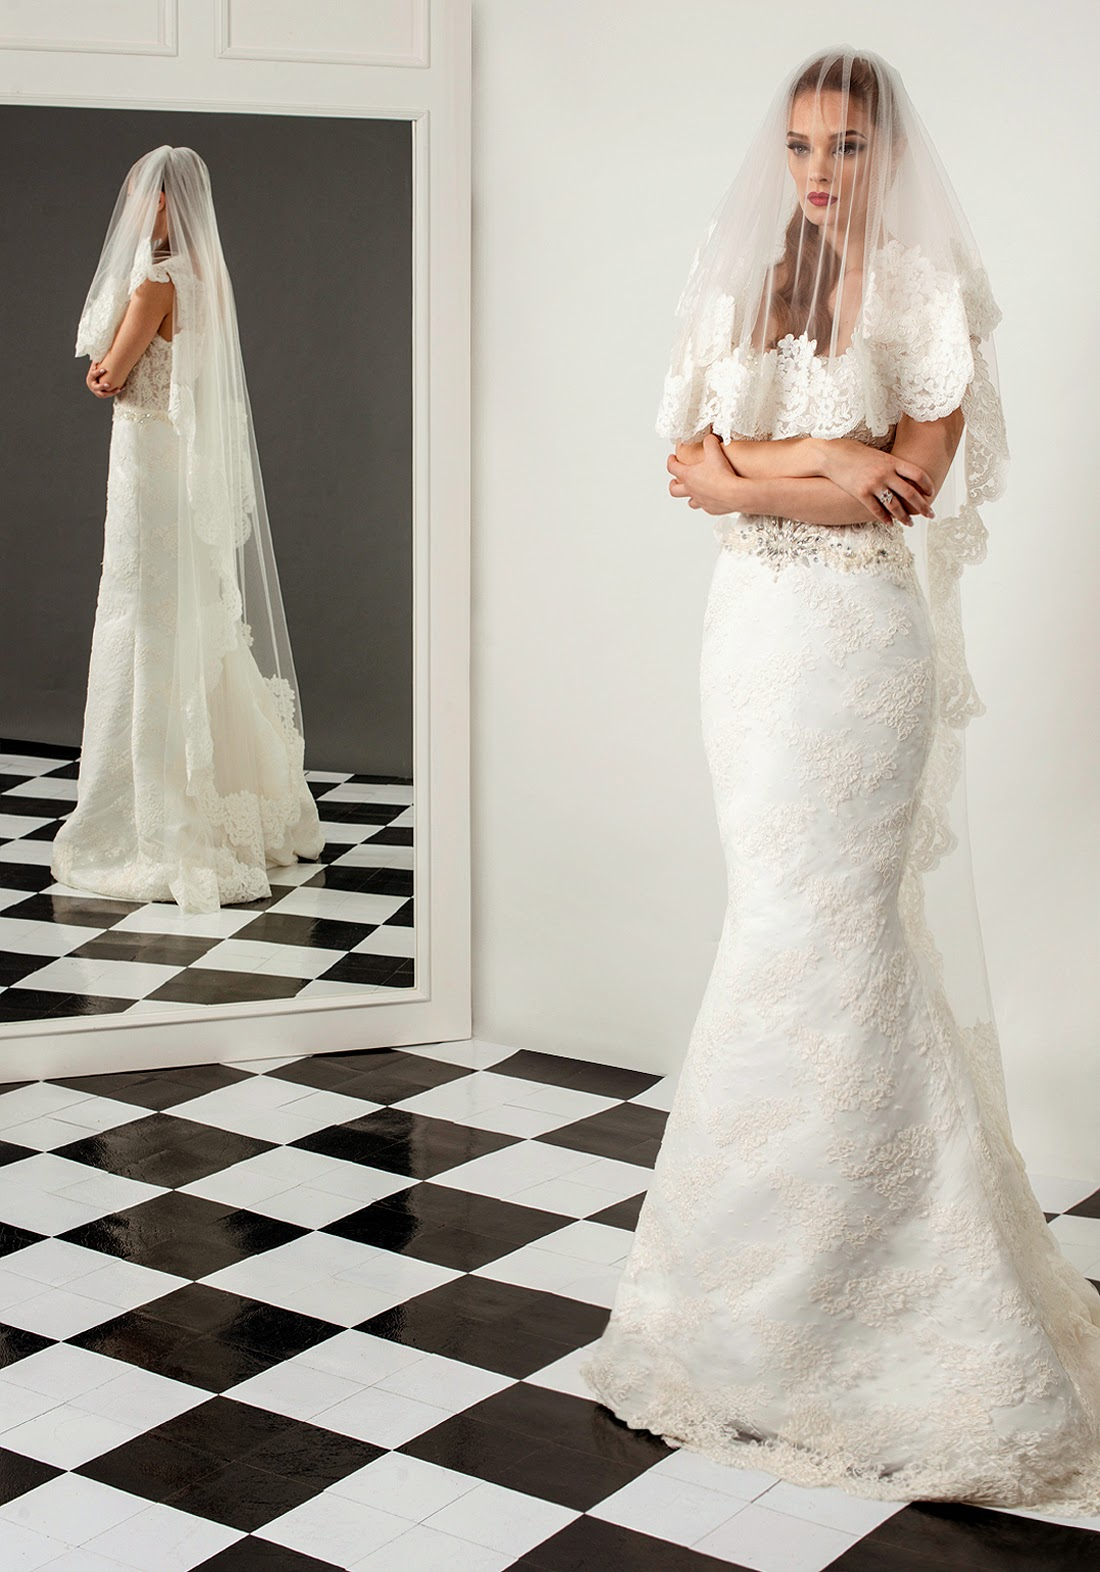 2015 bridal veil with lace embroidery by bien savvy